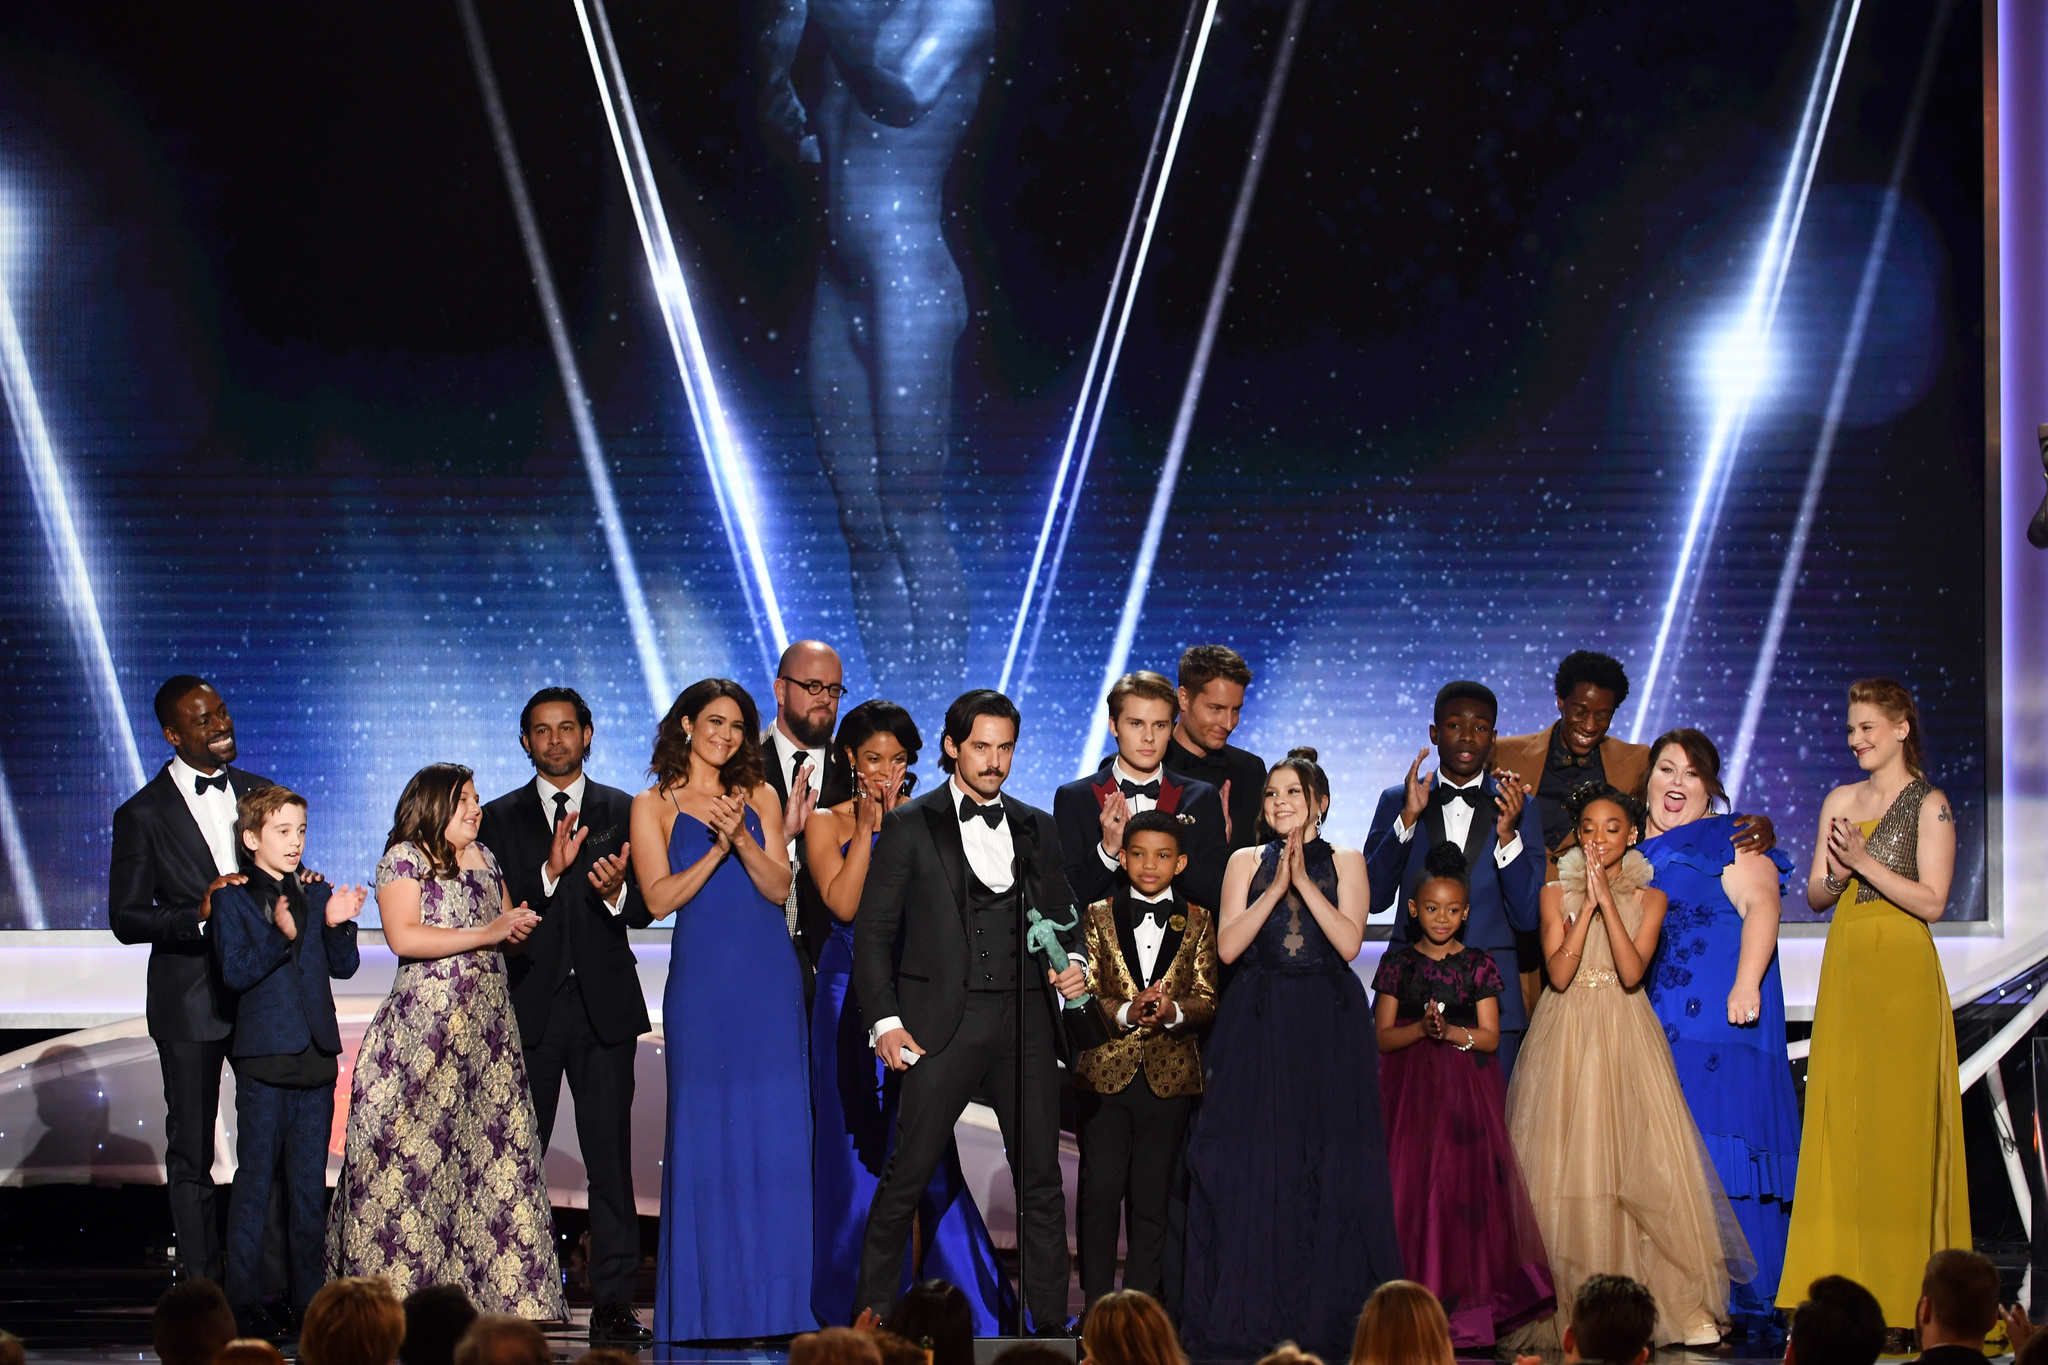 Mandy Moore, Milo Ventimiglia, Sterling K. Brown, Justin Hartley, Susan Kelechi Watson, Chrissy Metz, Chris Sullivan, Hannah Zeile, Faithe Herman, and Eris Baker at an event for 24th Annual Screen Actors Guild Awards (2018)